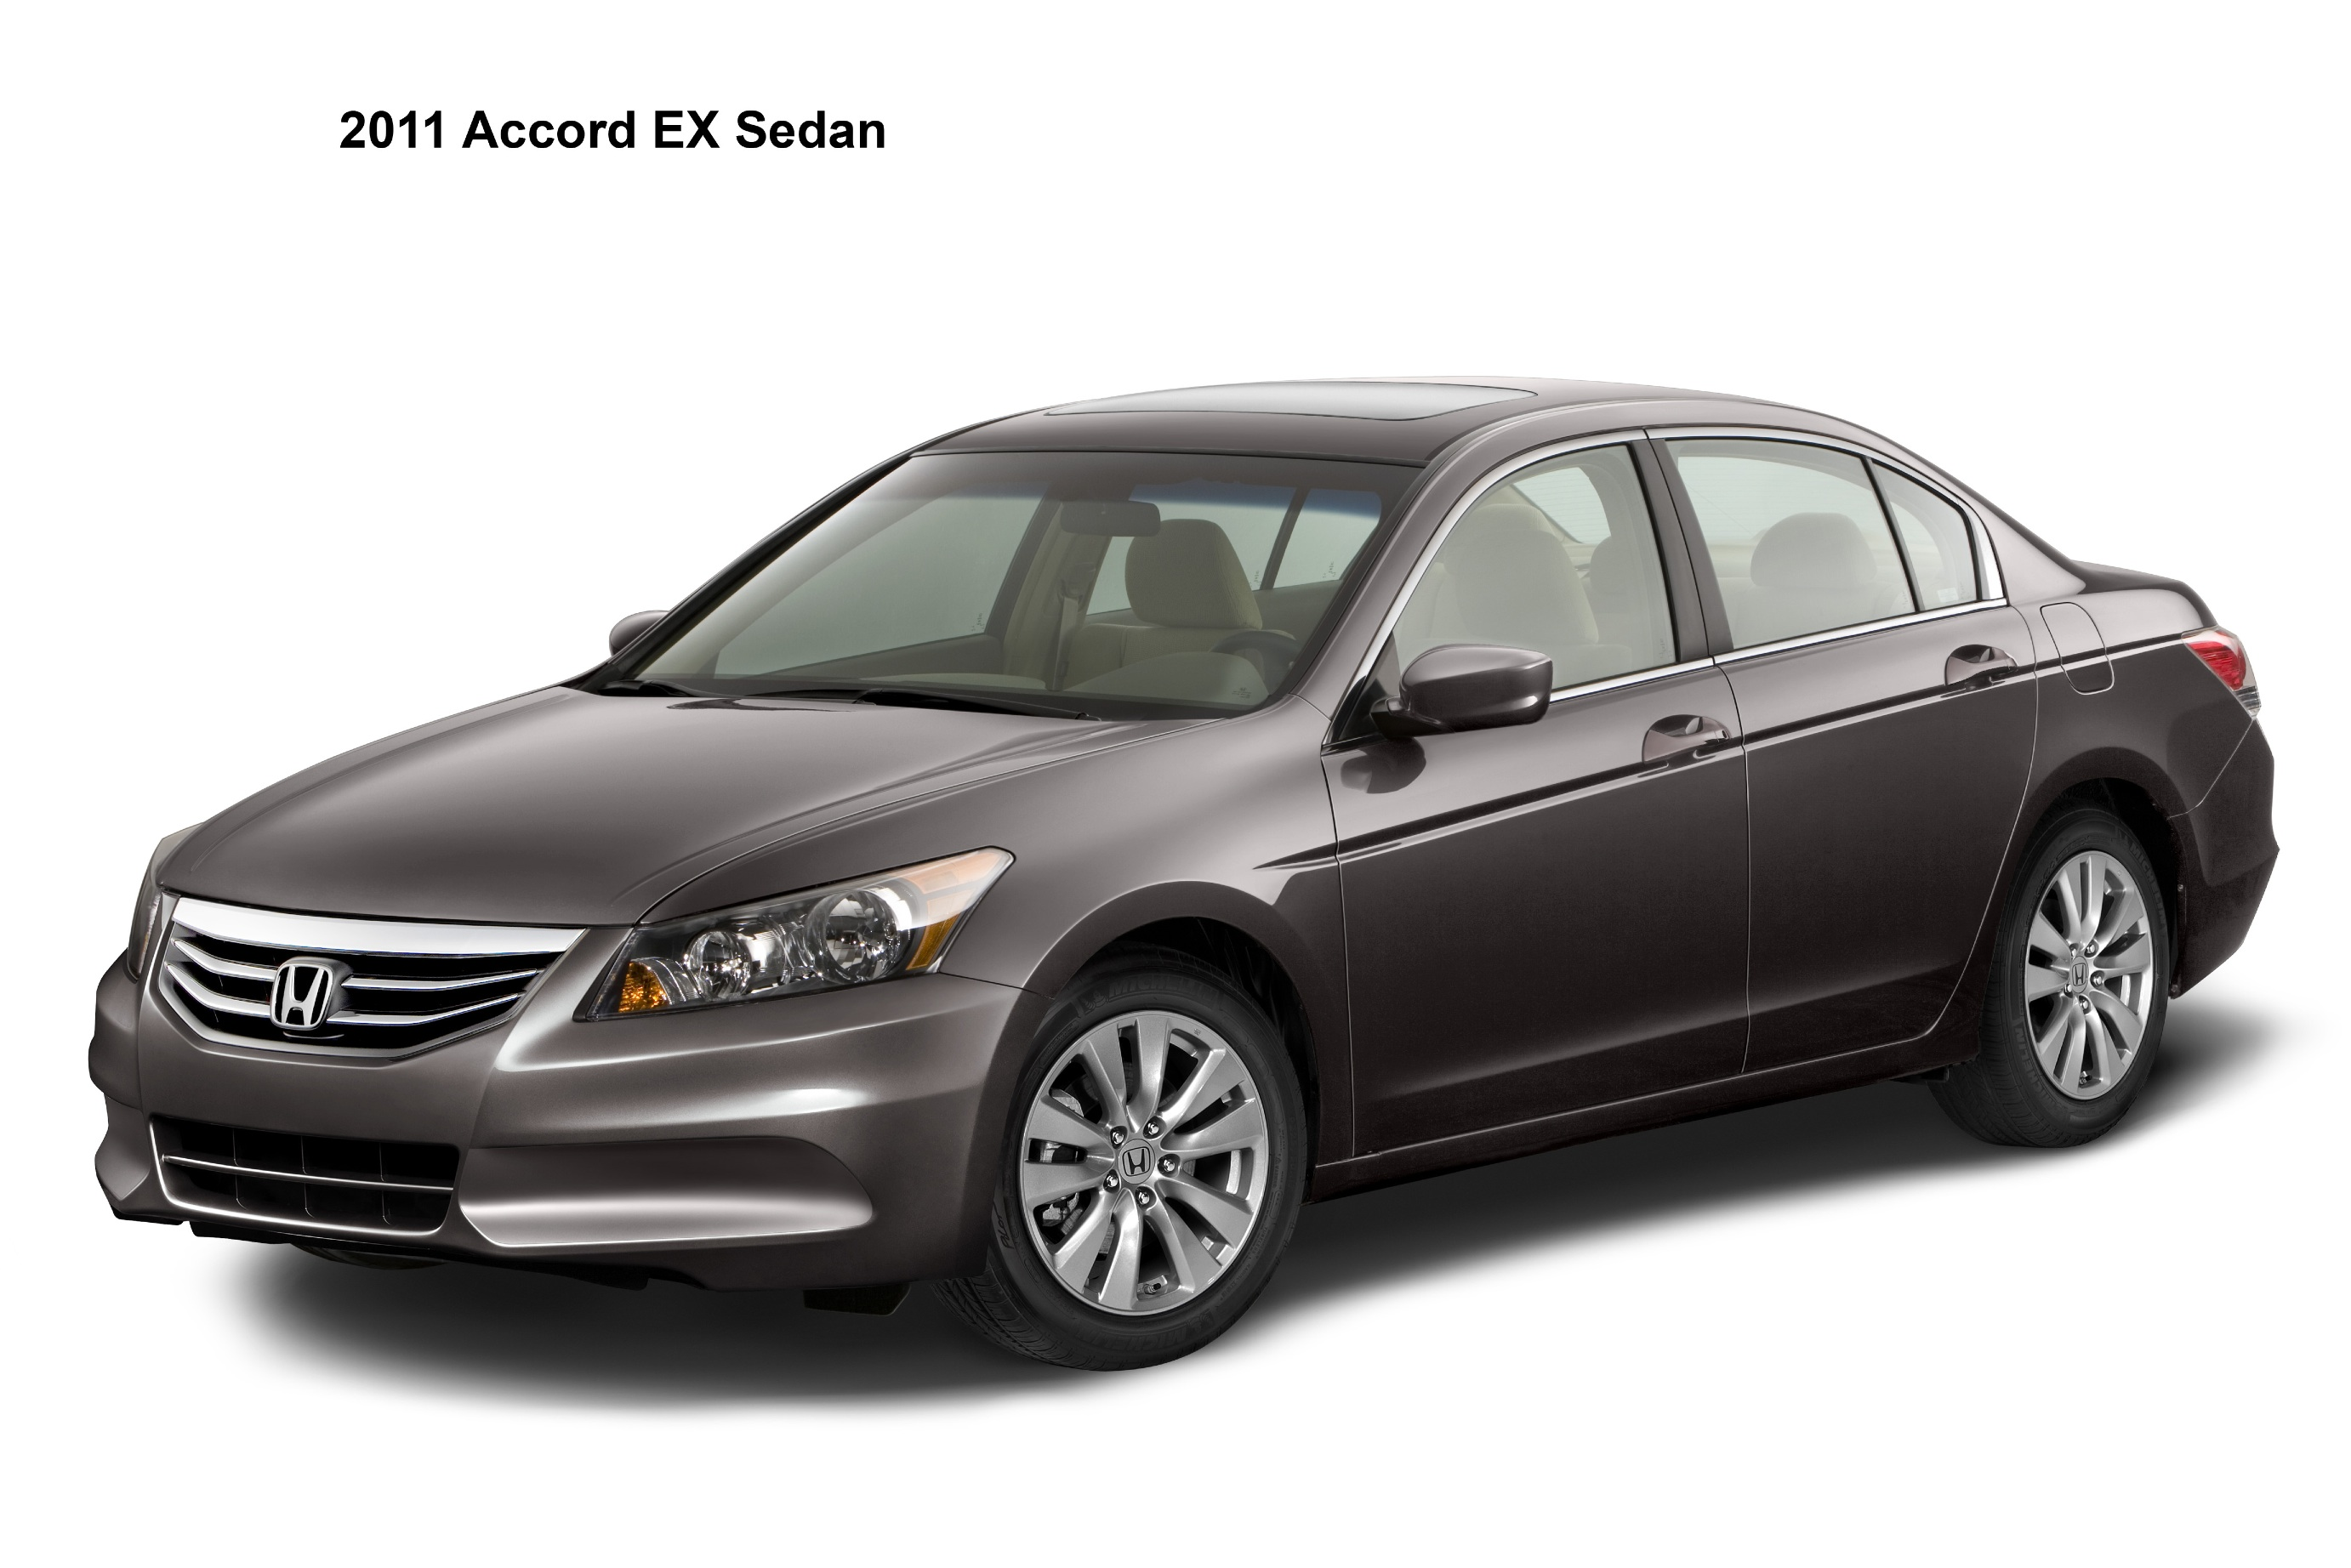 Gas Mileage Of 2011 Honda Accord Fuel Economy Autos Post